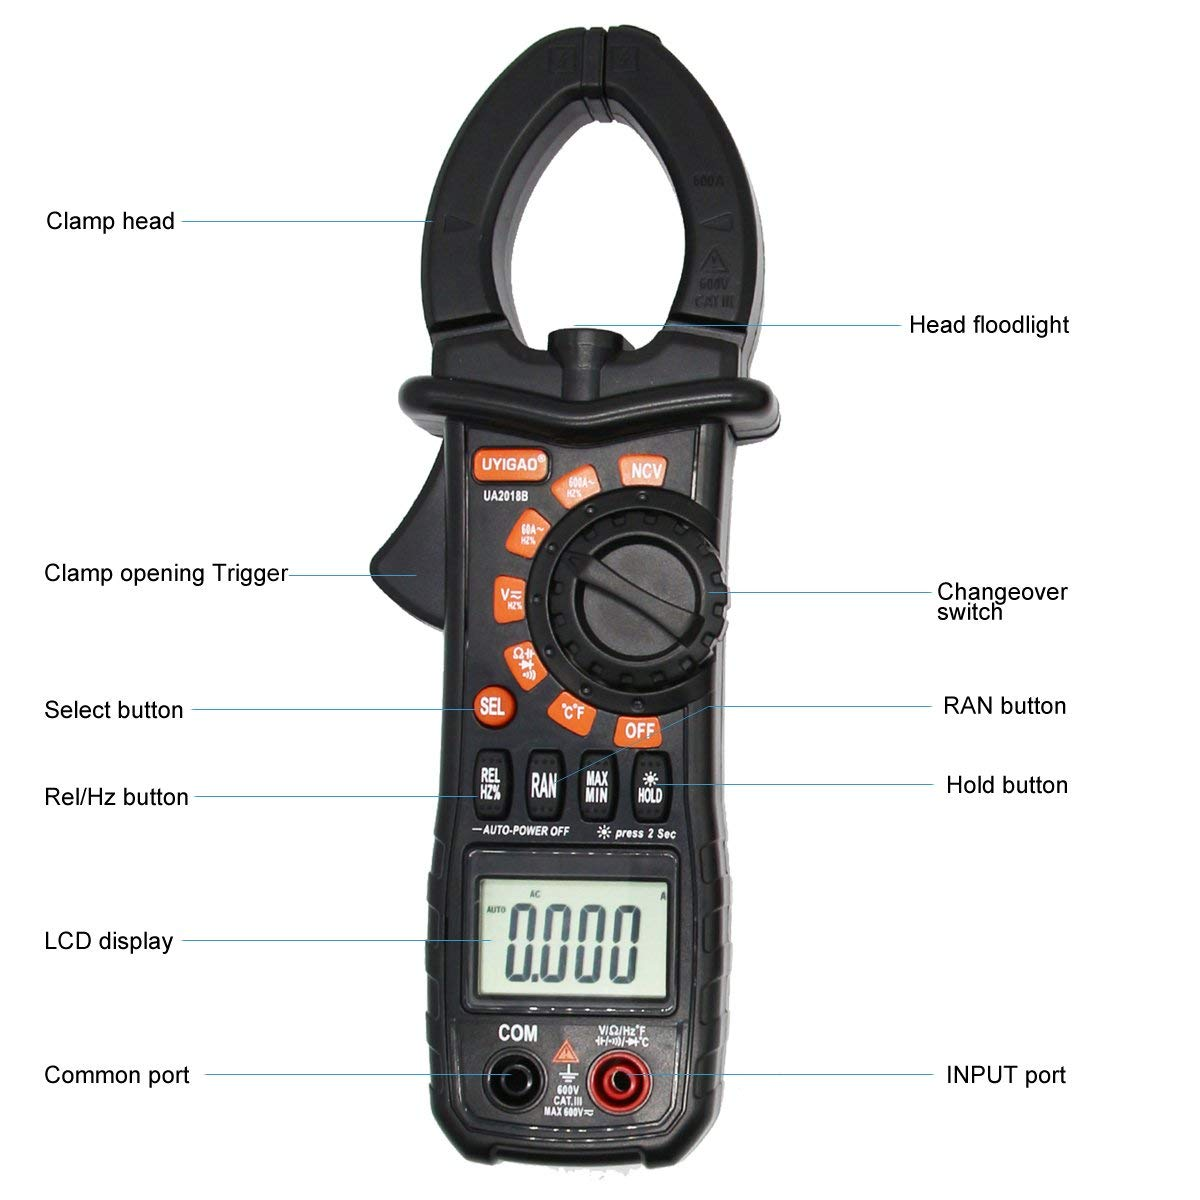 Digital Clamp Meter with 6000 Counts Auto Range Multimeter with AC DC Voltage, Resistance, AC Current, Diode Test, Build in Flashlight and LCD Display